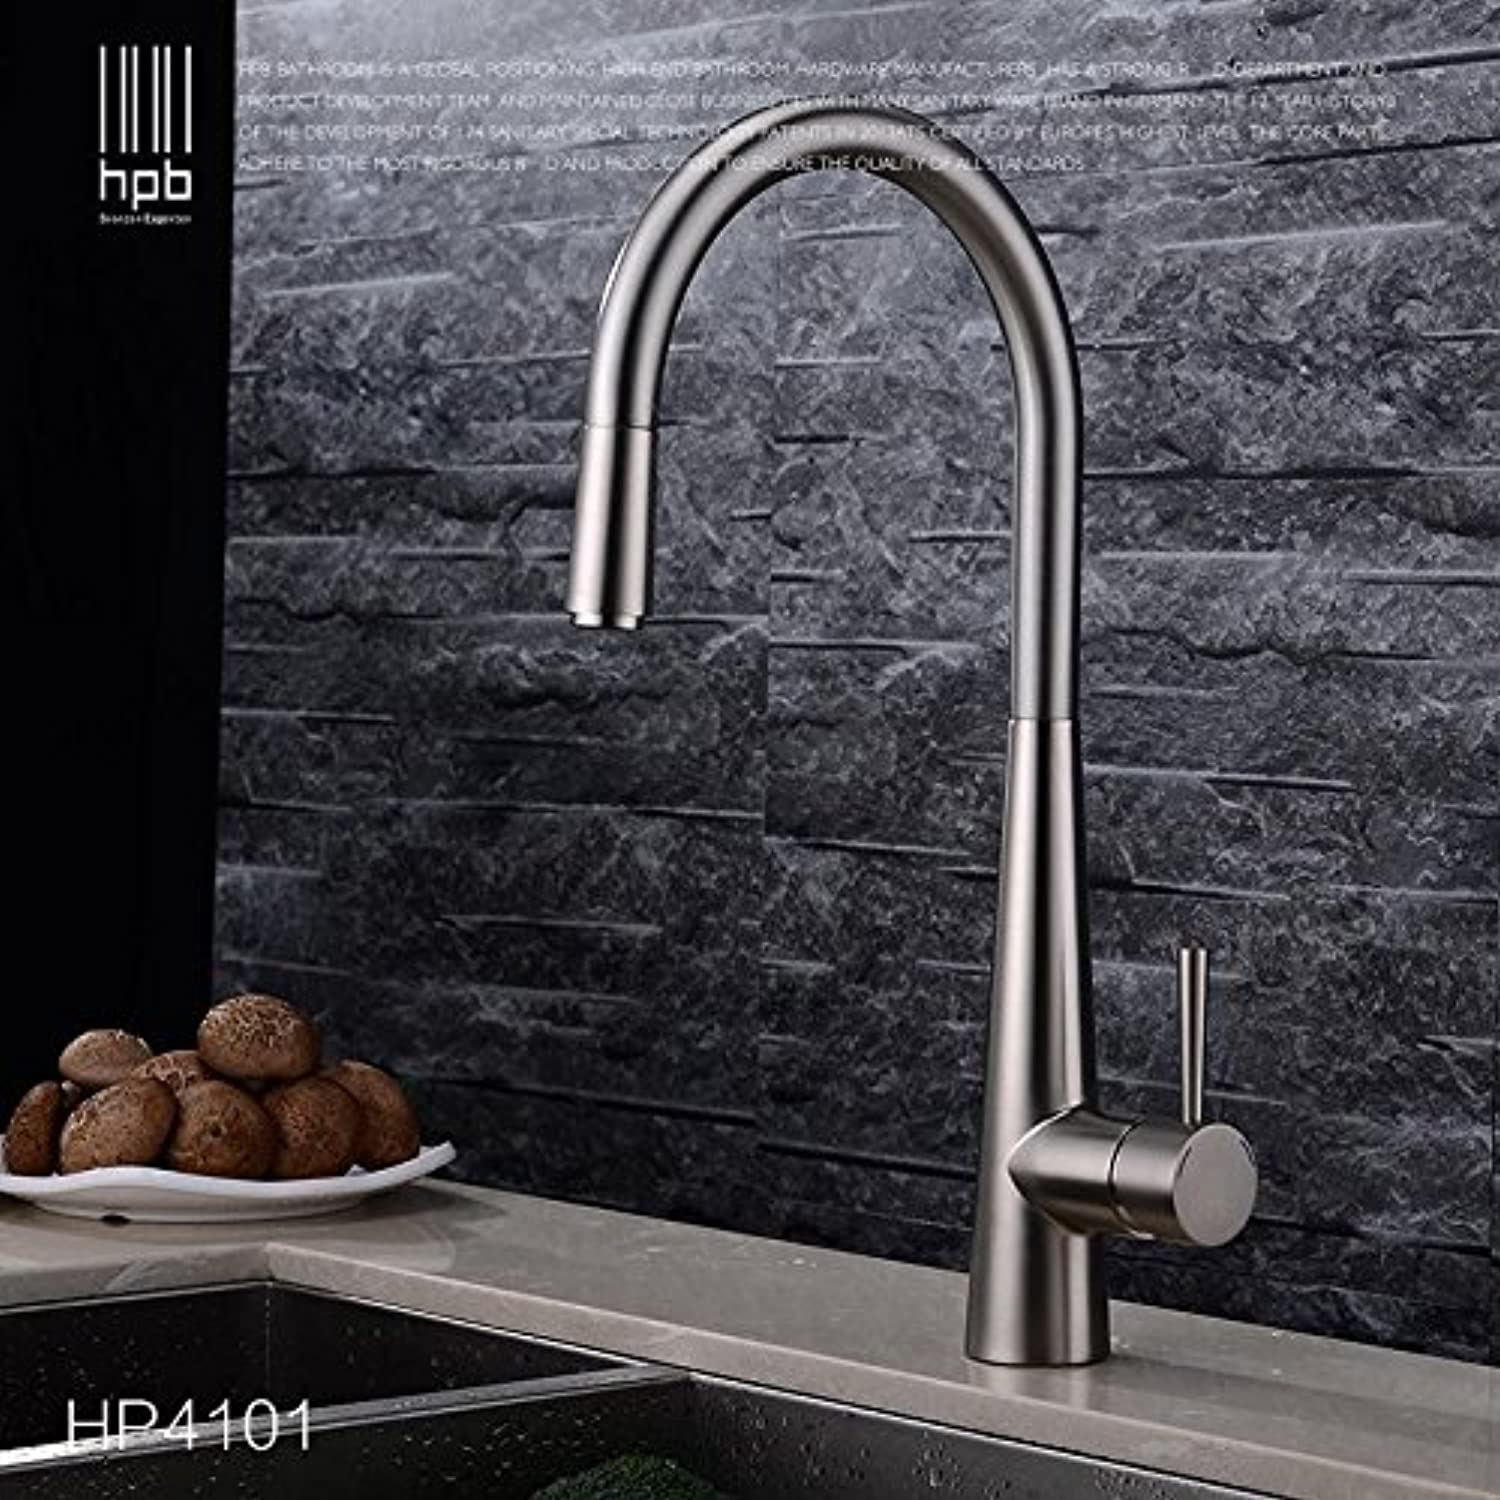 Tw All copper hot and cold single hole pull drawing kitchen faucet   kitchen sink redary taps